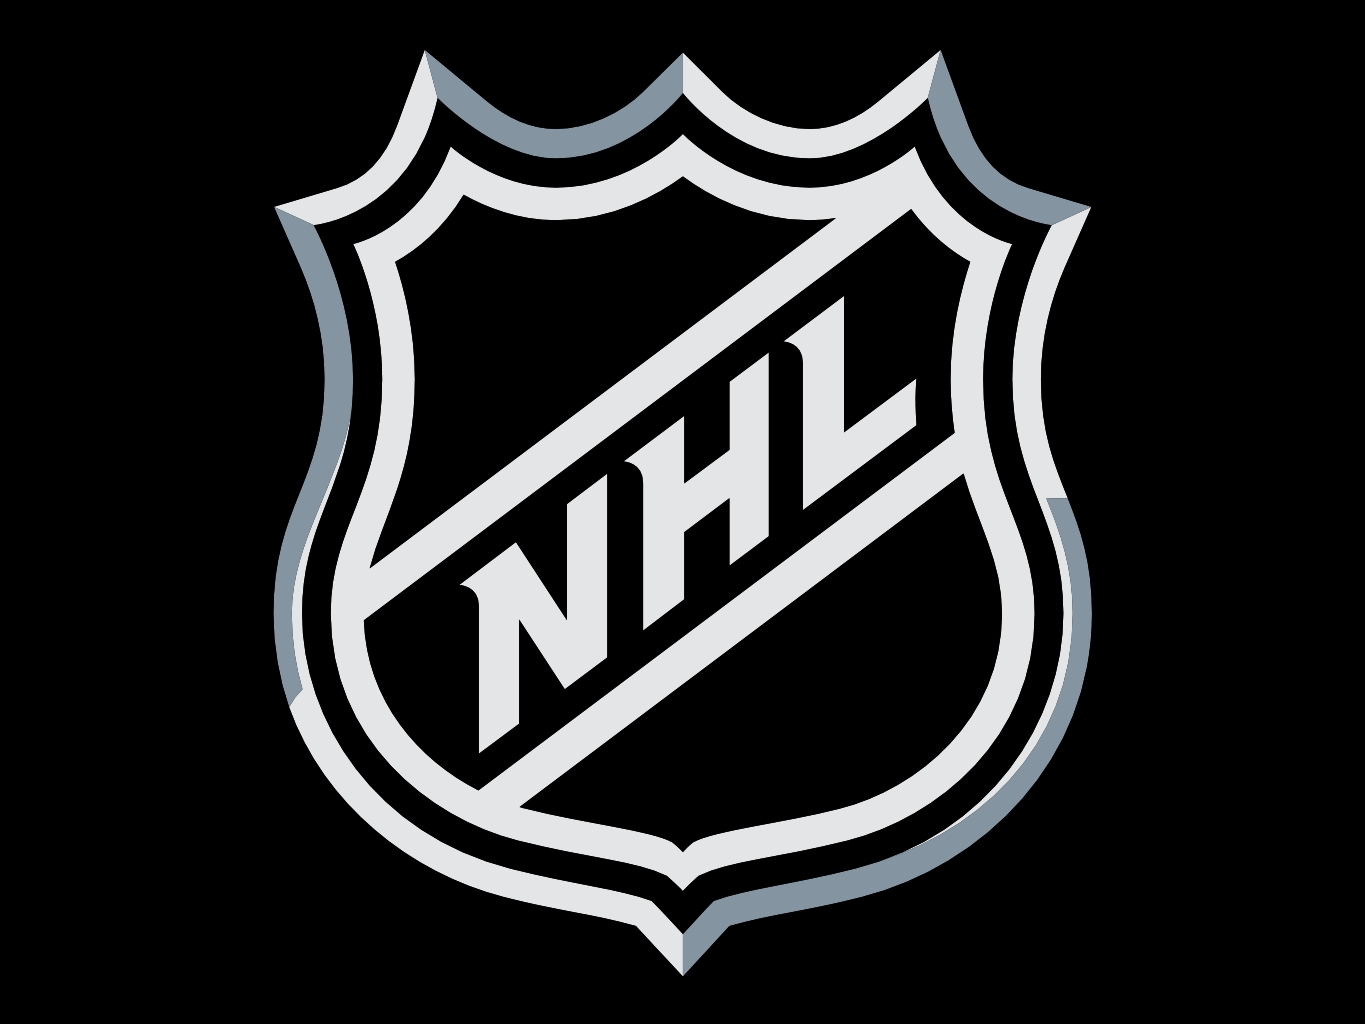 NHL logo, wallpaper, скачать